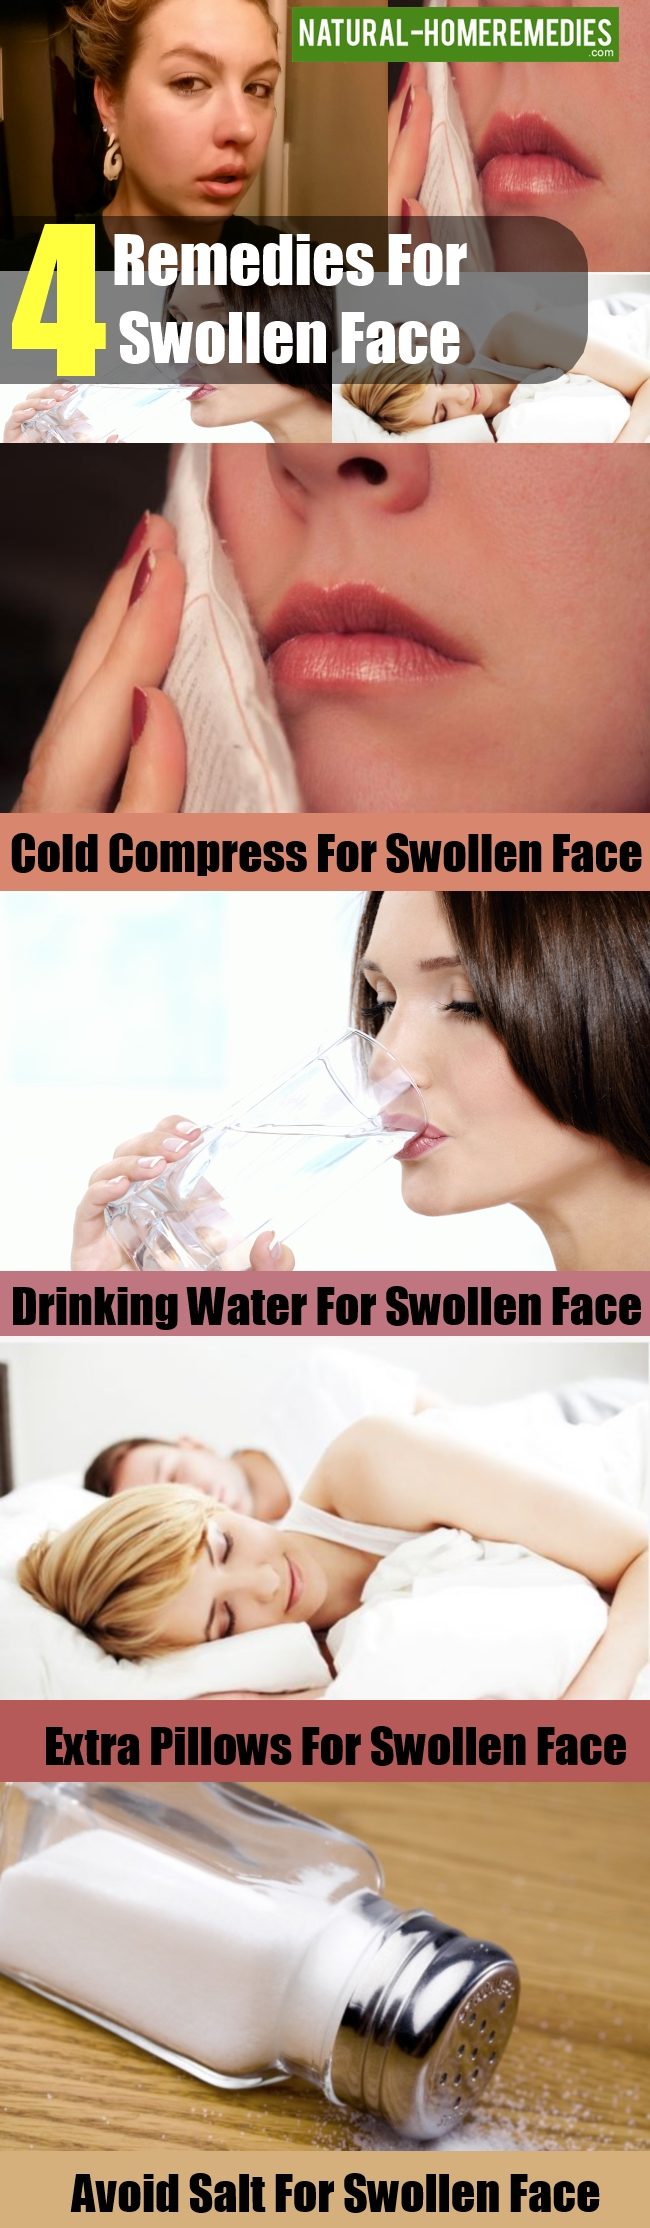 Remedies For Swollen Face